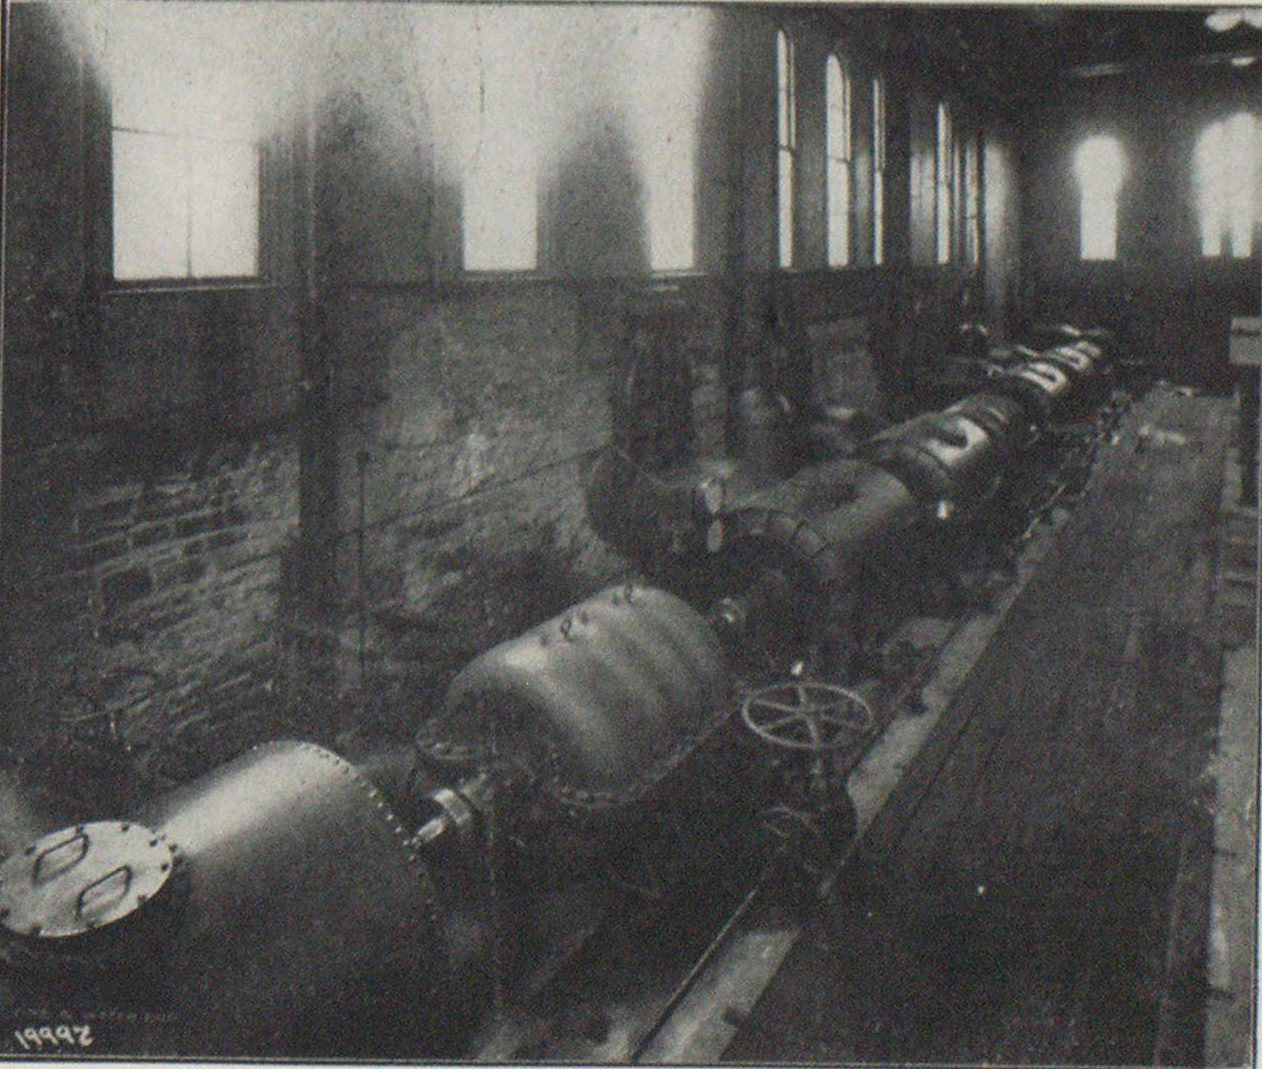 TURBINE OPERATED CENTRIFUGAL PUMPS, WASHINGTON STATION.